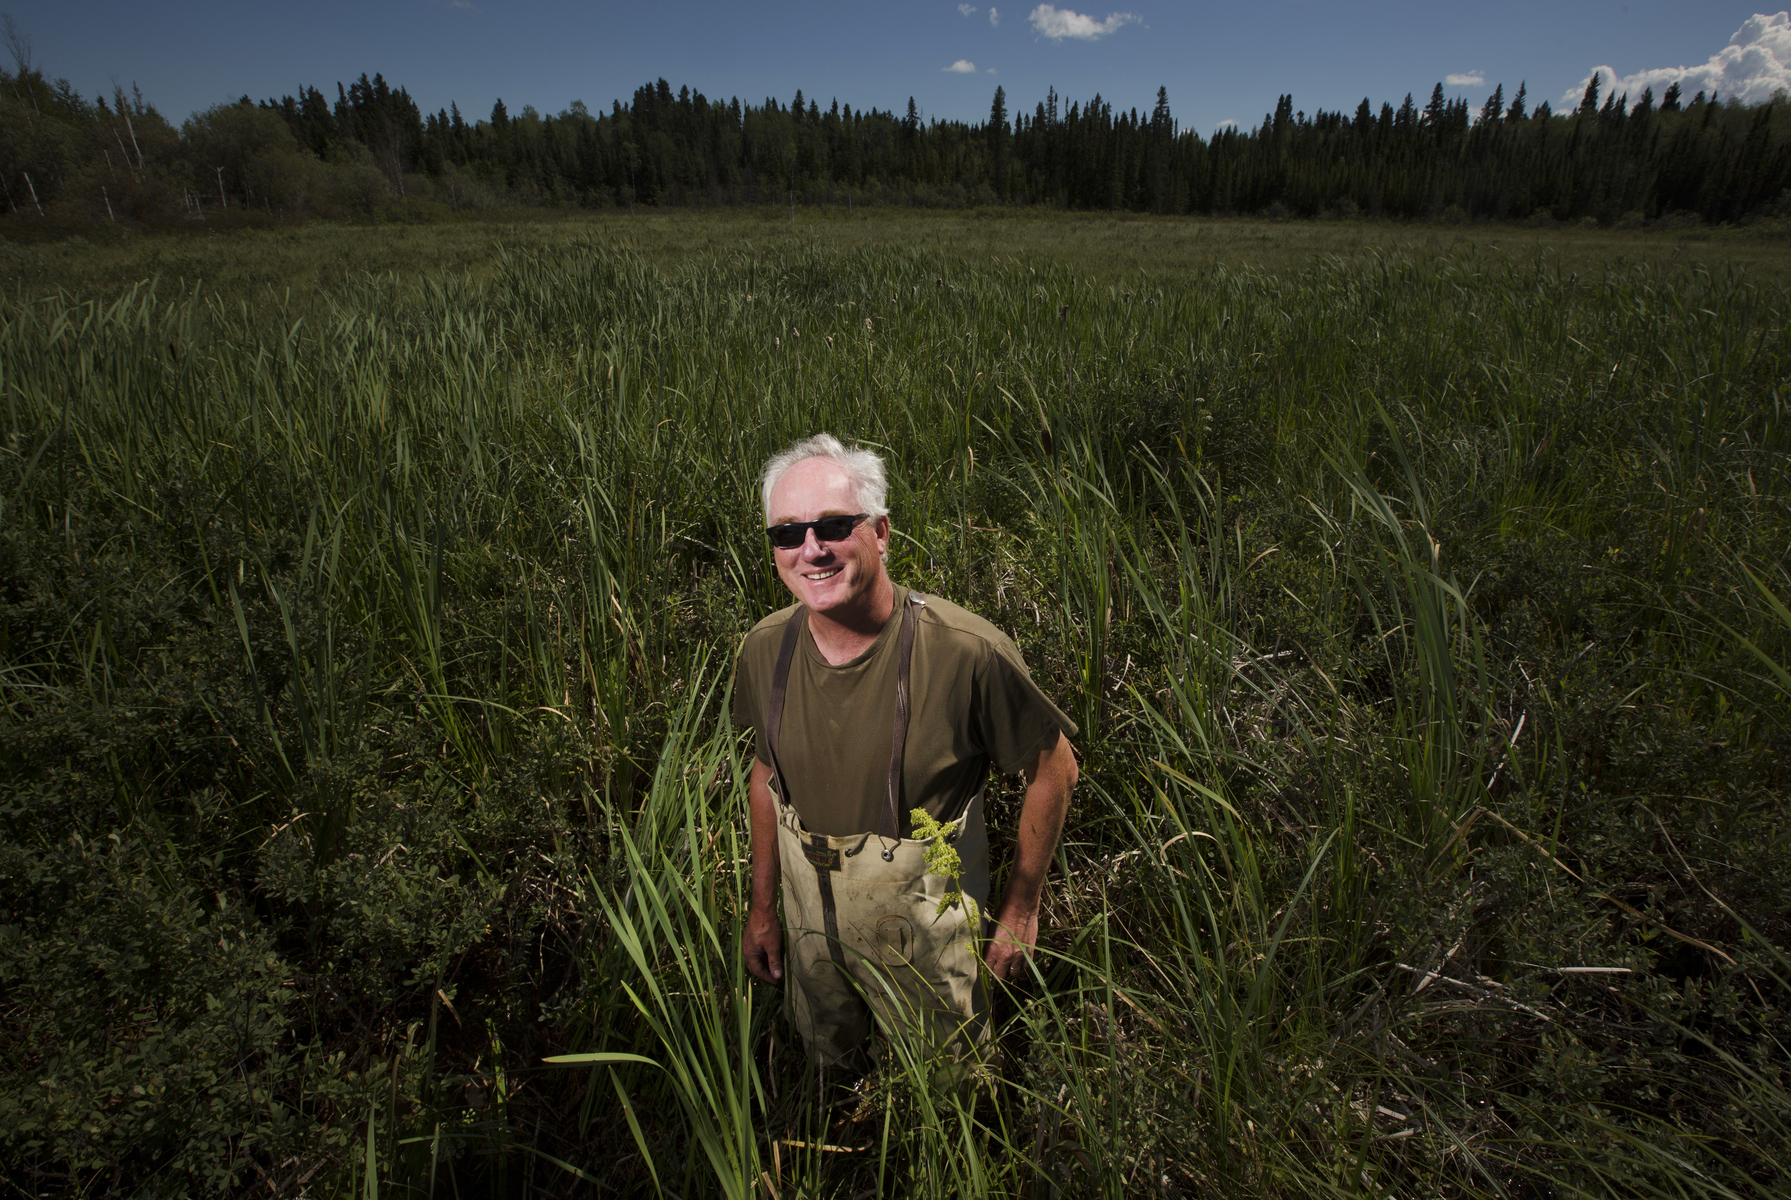 Wetlands biologist Chris Smith, Cranberry Portage, Manitoba